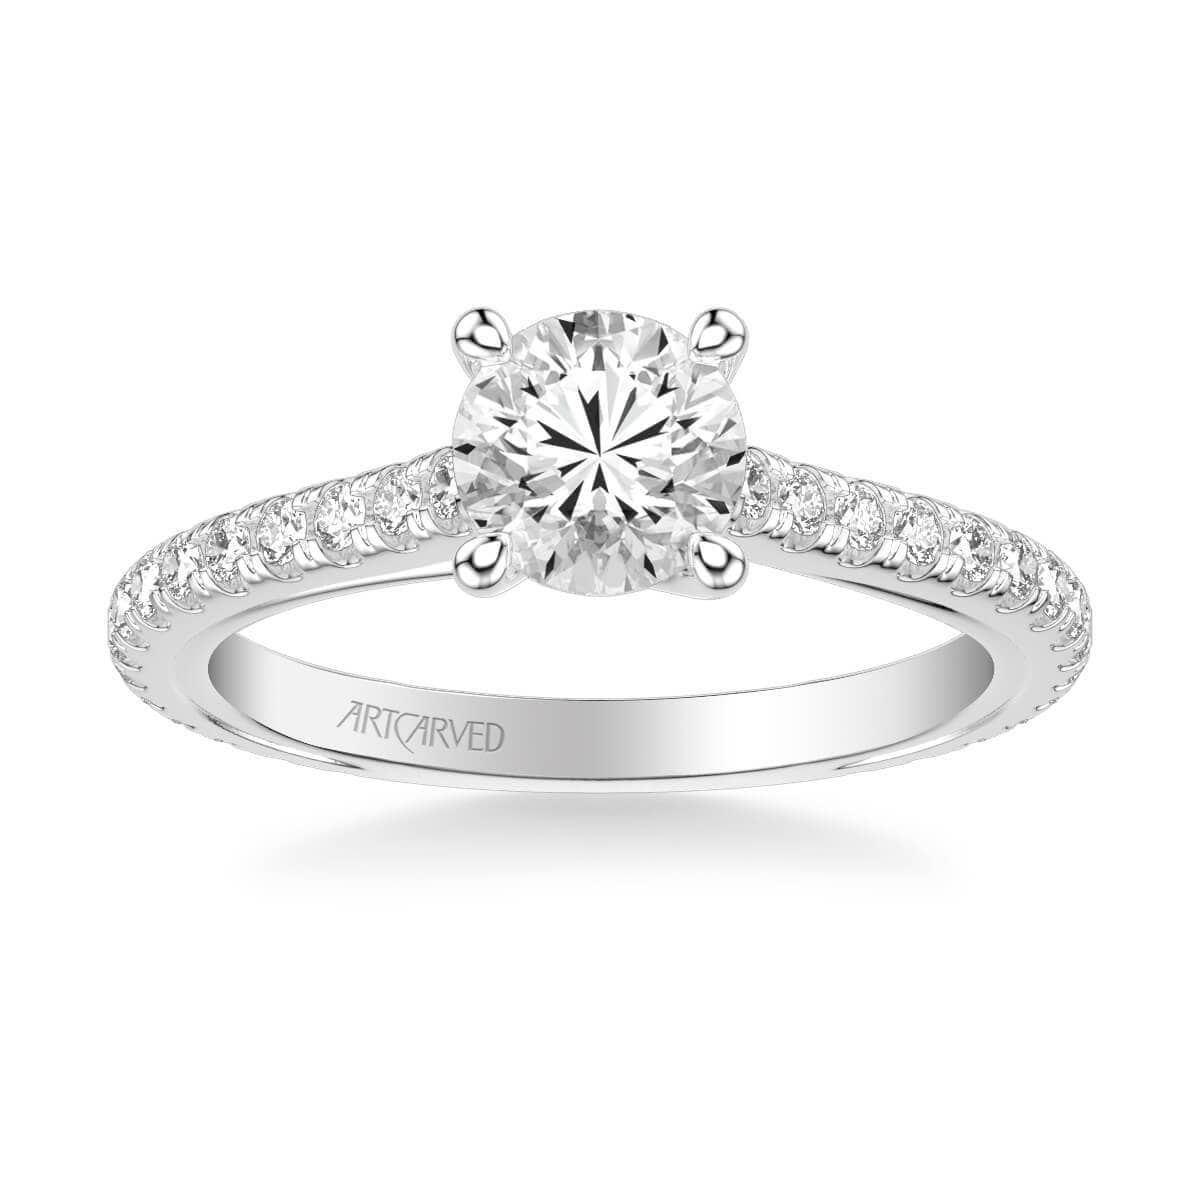 Carmen Contemporary Side Stone Twist Diamond Engagement Ring